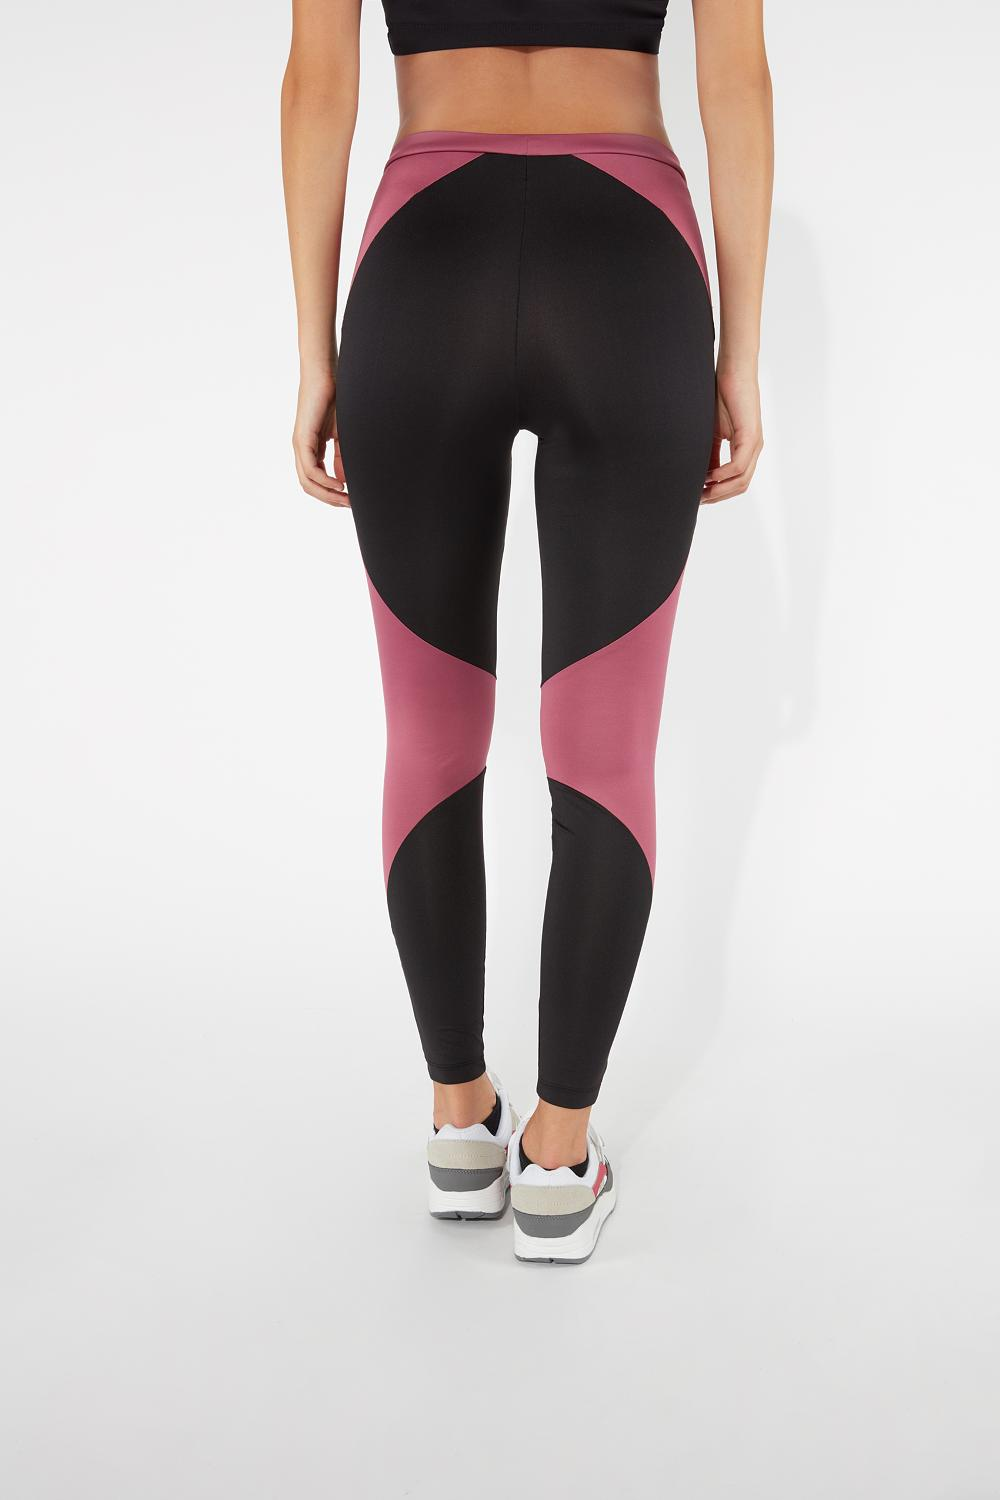 Leggings de Microfibra en Contraste de Color